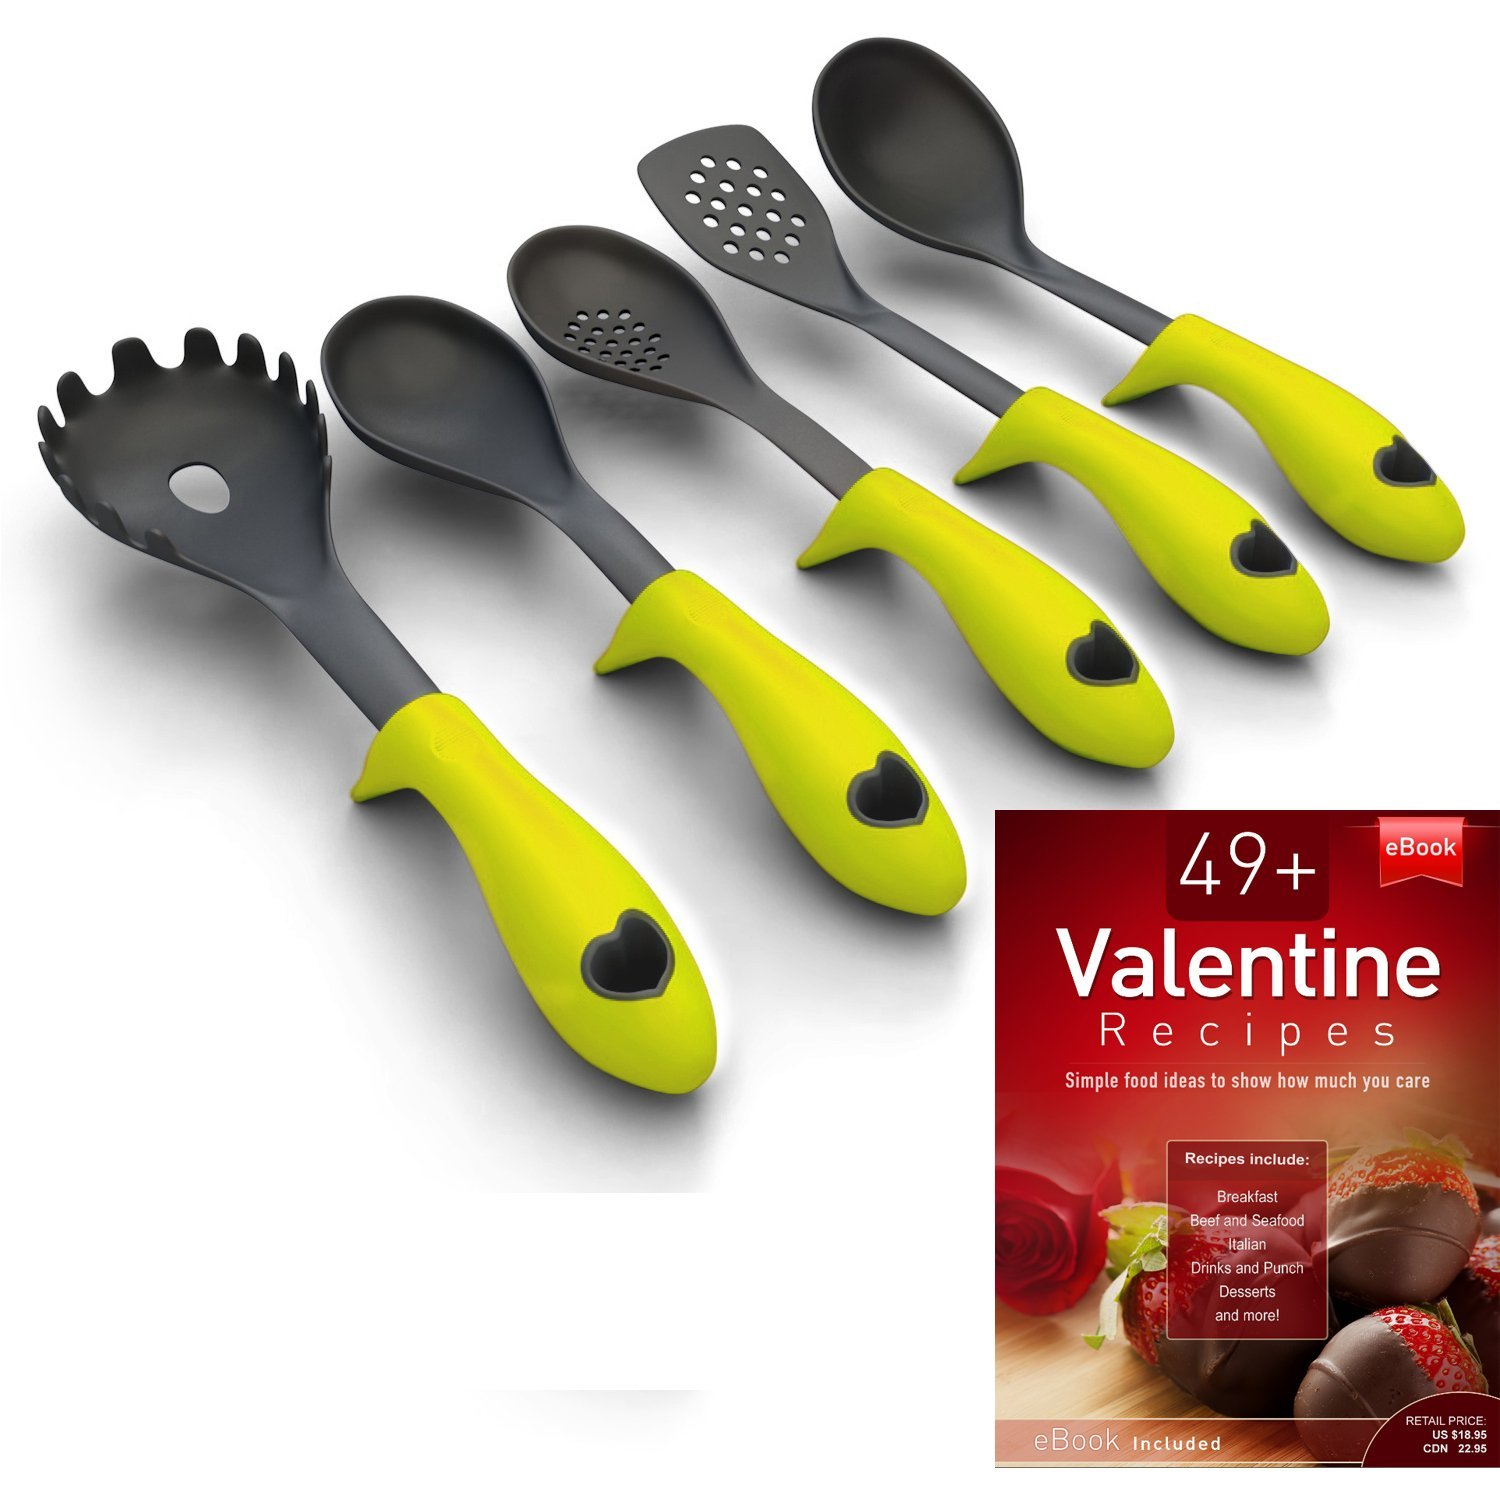 Vday Cooking set